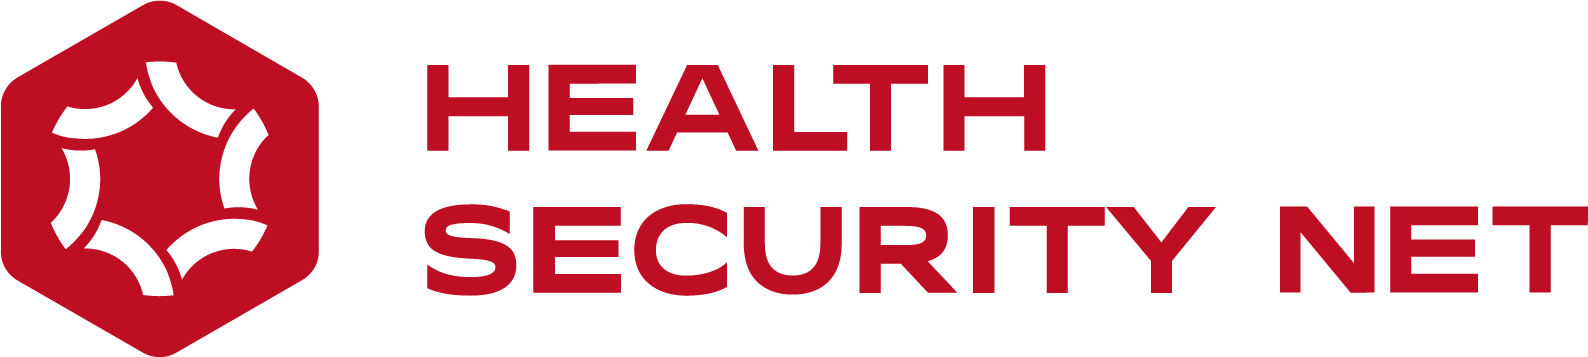 Health Security Net logo